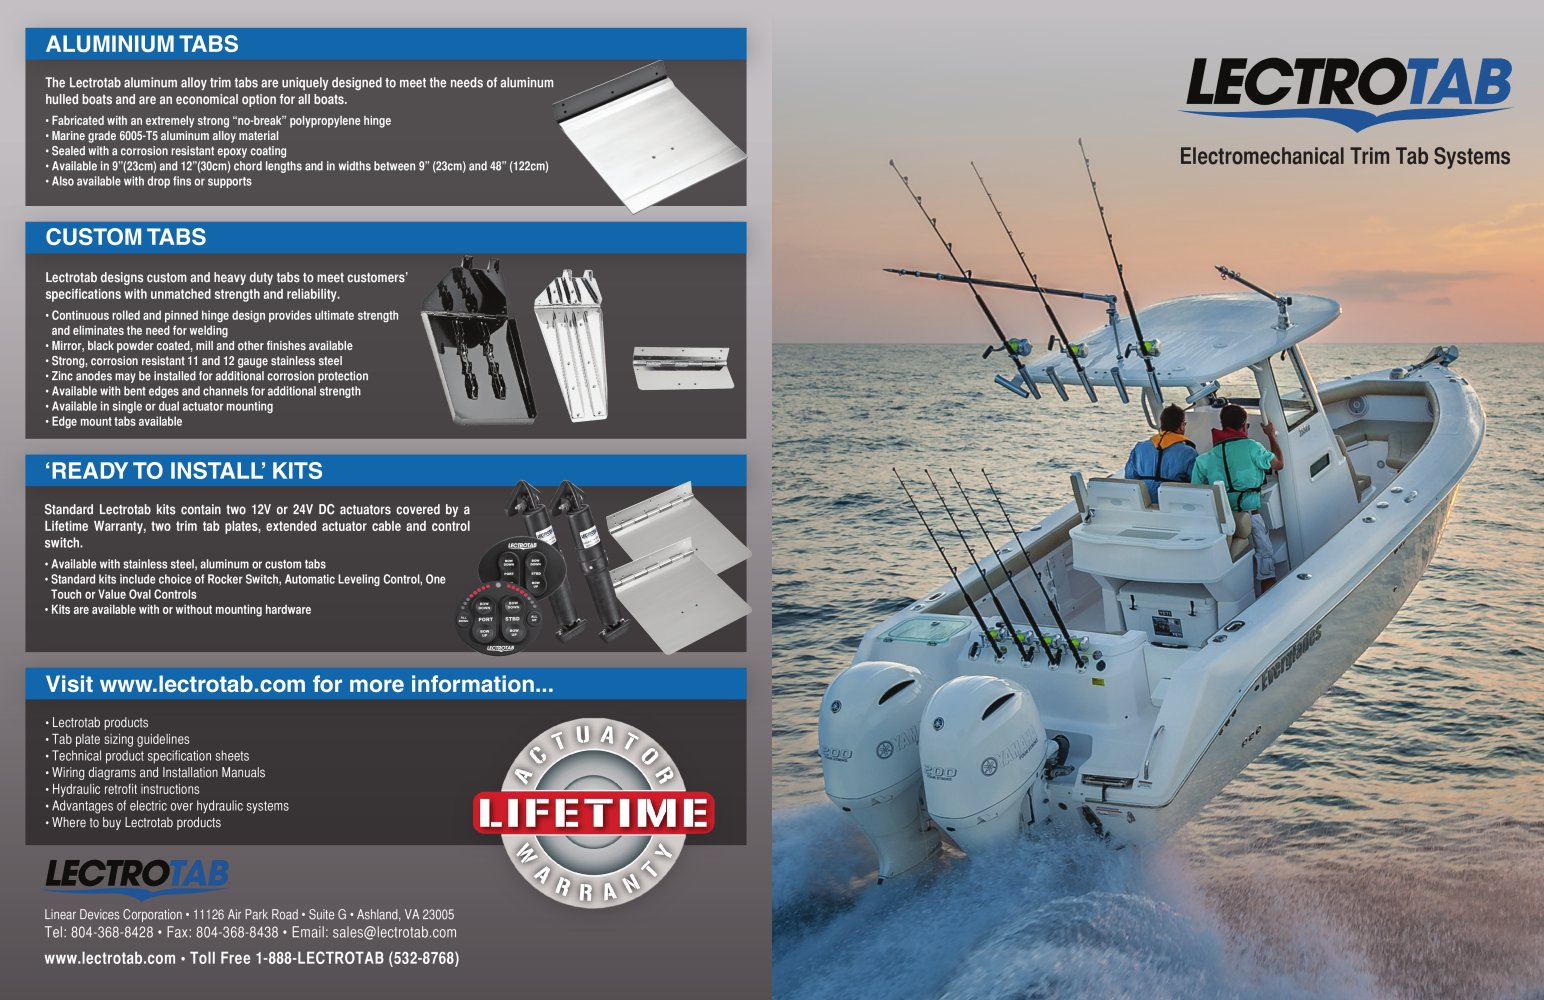 hight resolution of lectrotab brochure 2014 2 pages